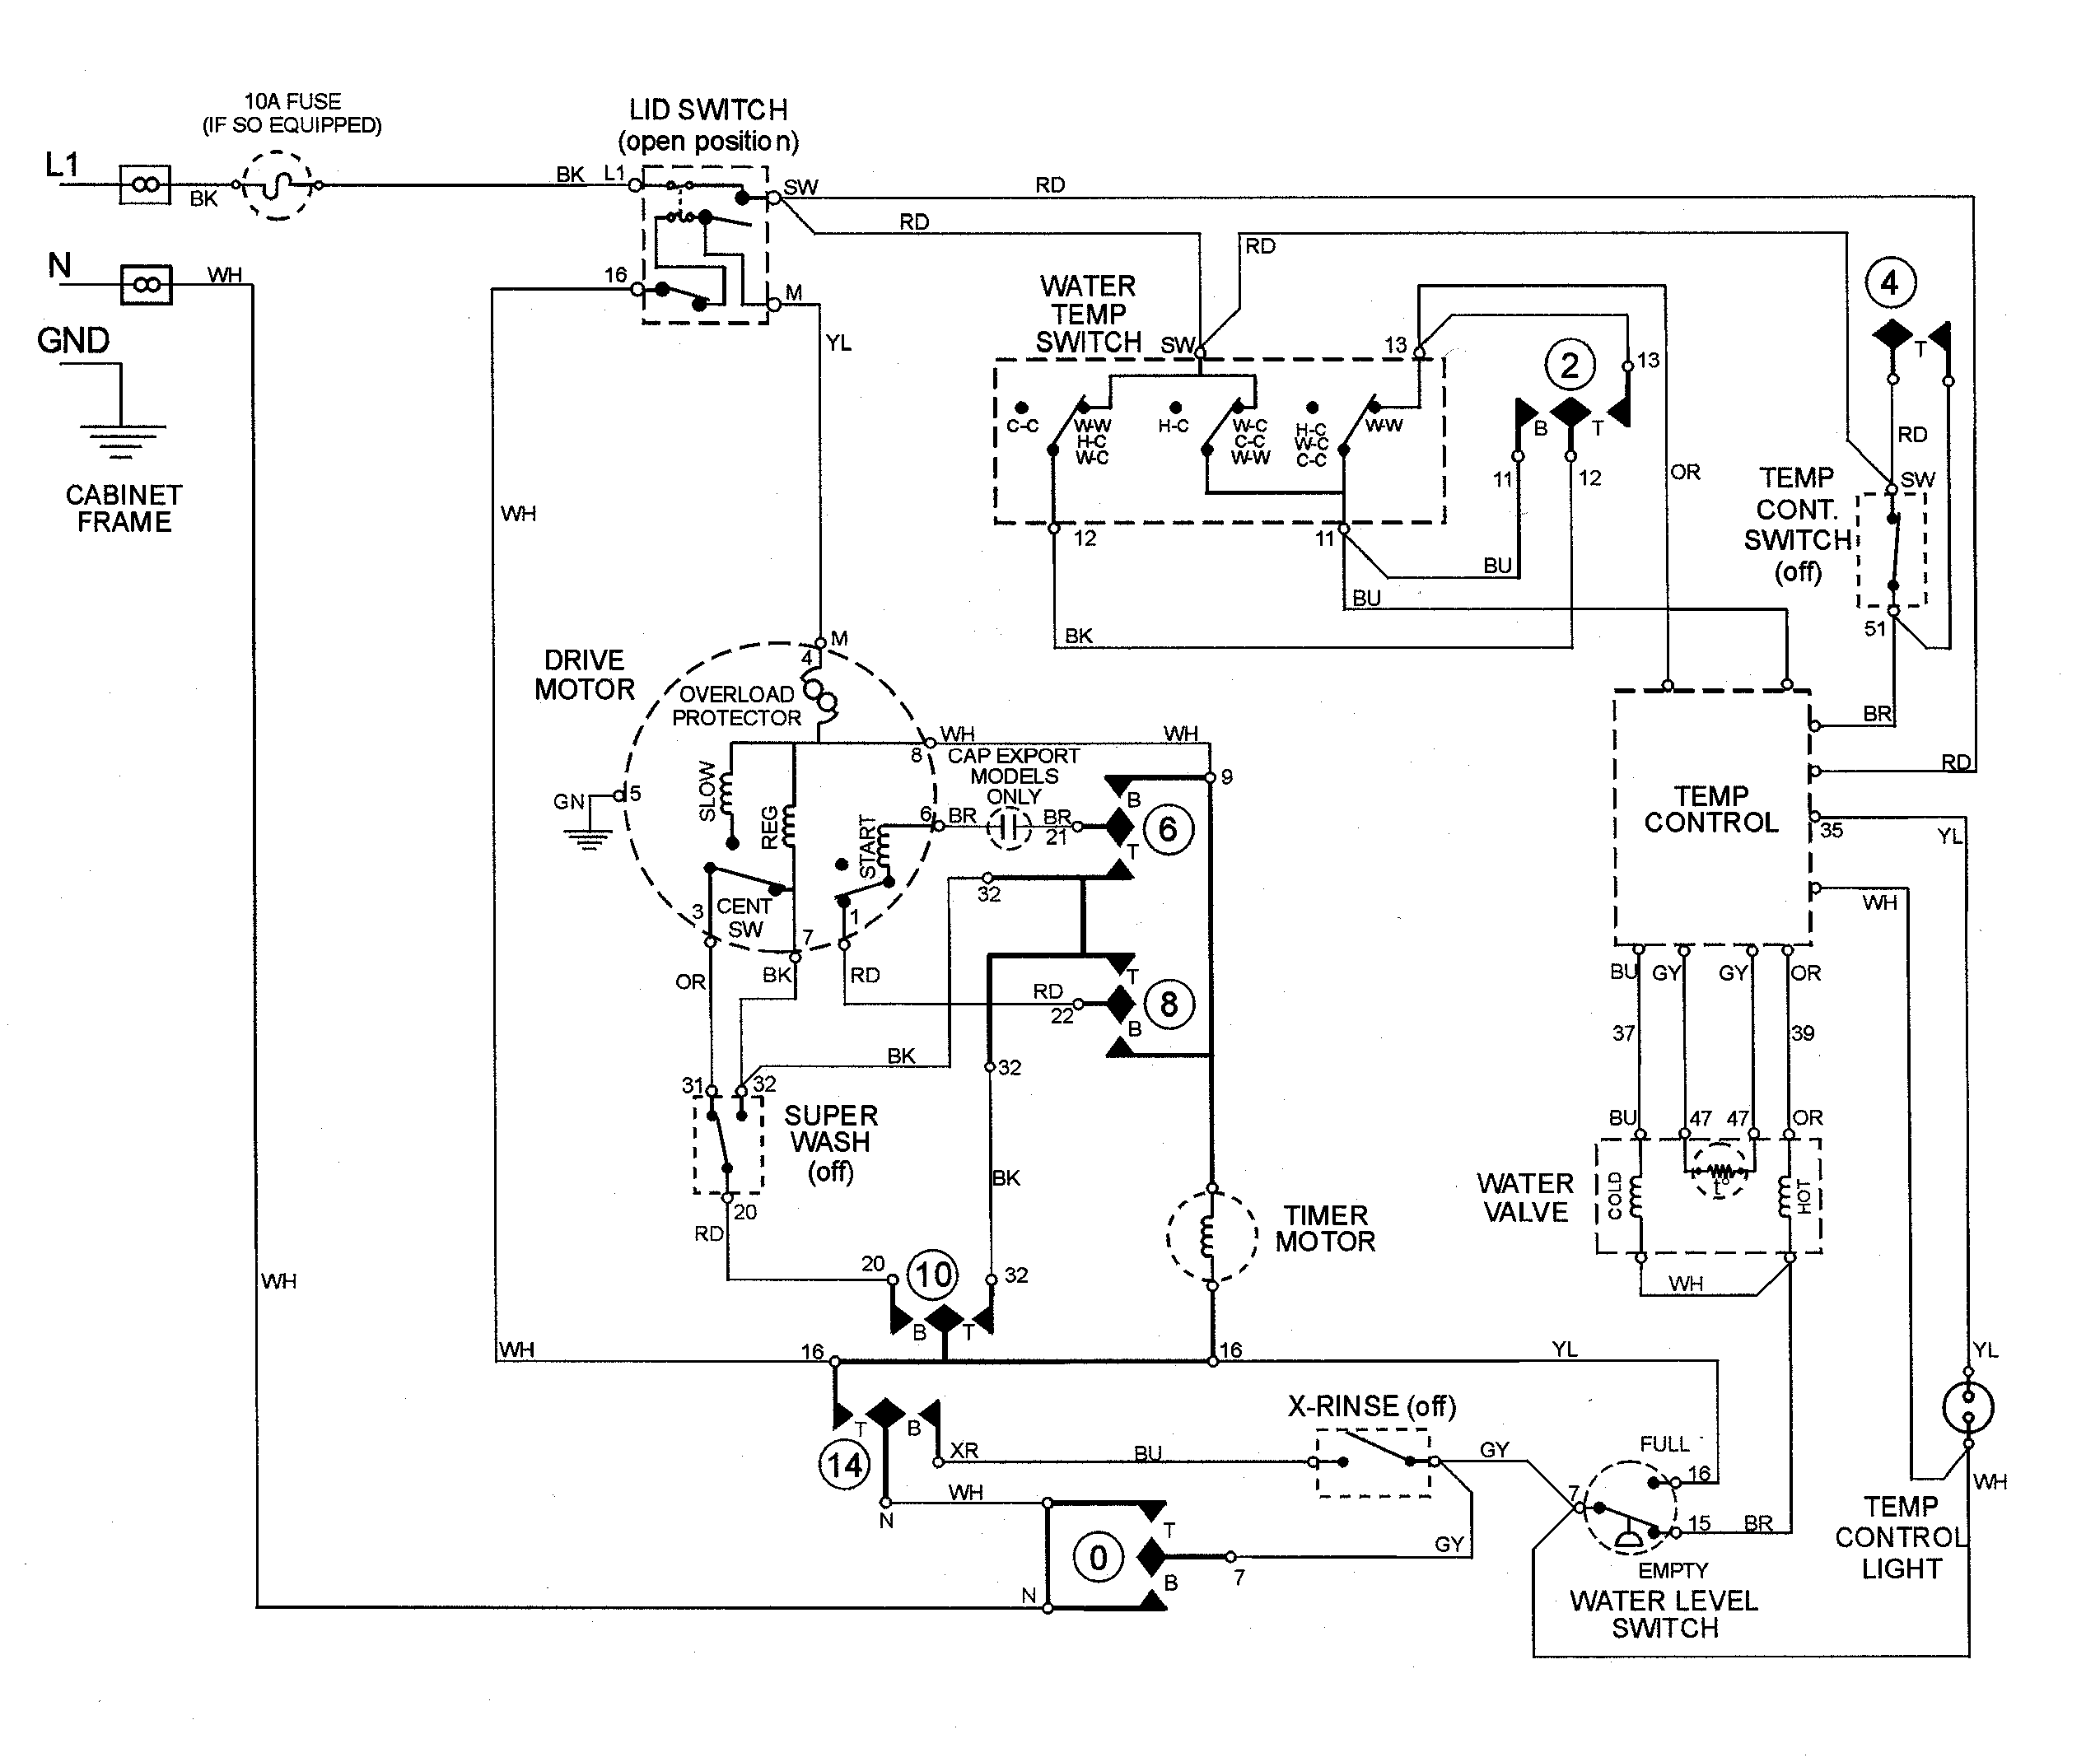 Ge Refrigerator Electrical Wiring Diagram Schematic Archive Of Automotive Electric Schematics Rh Thyl Co Uk